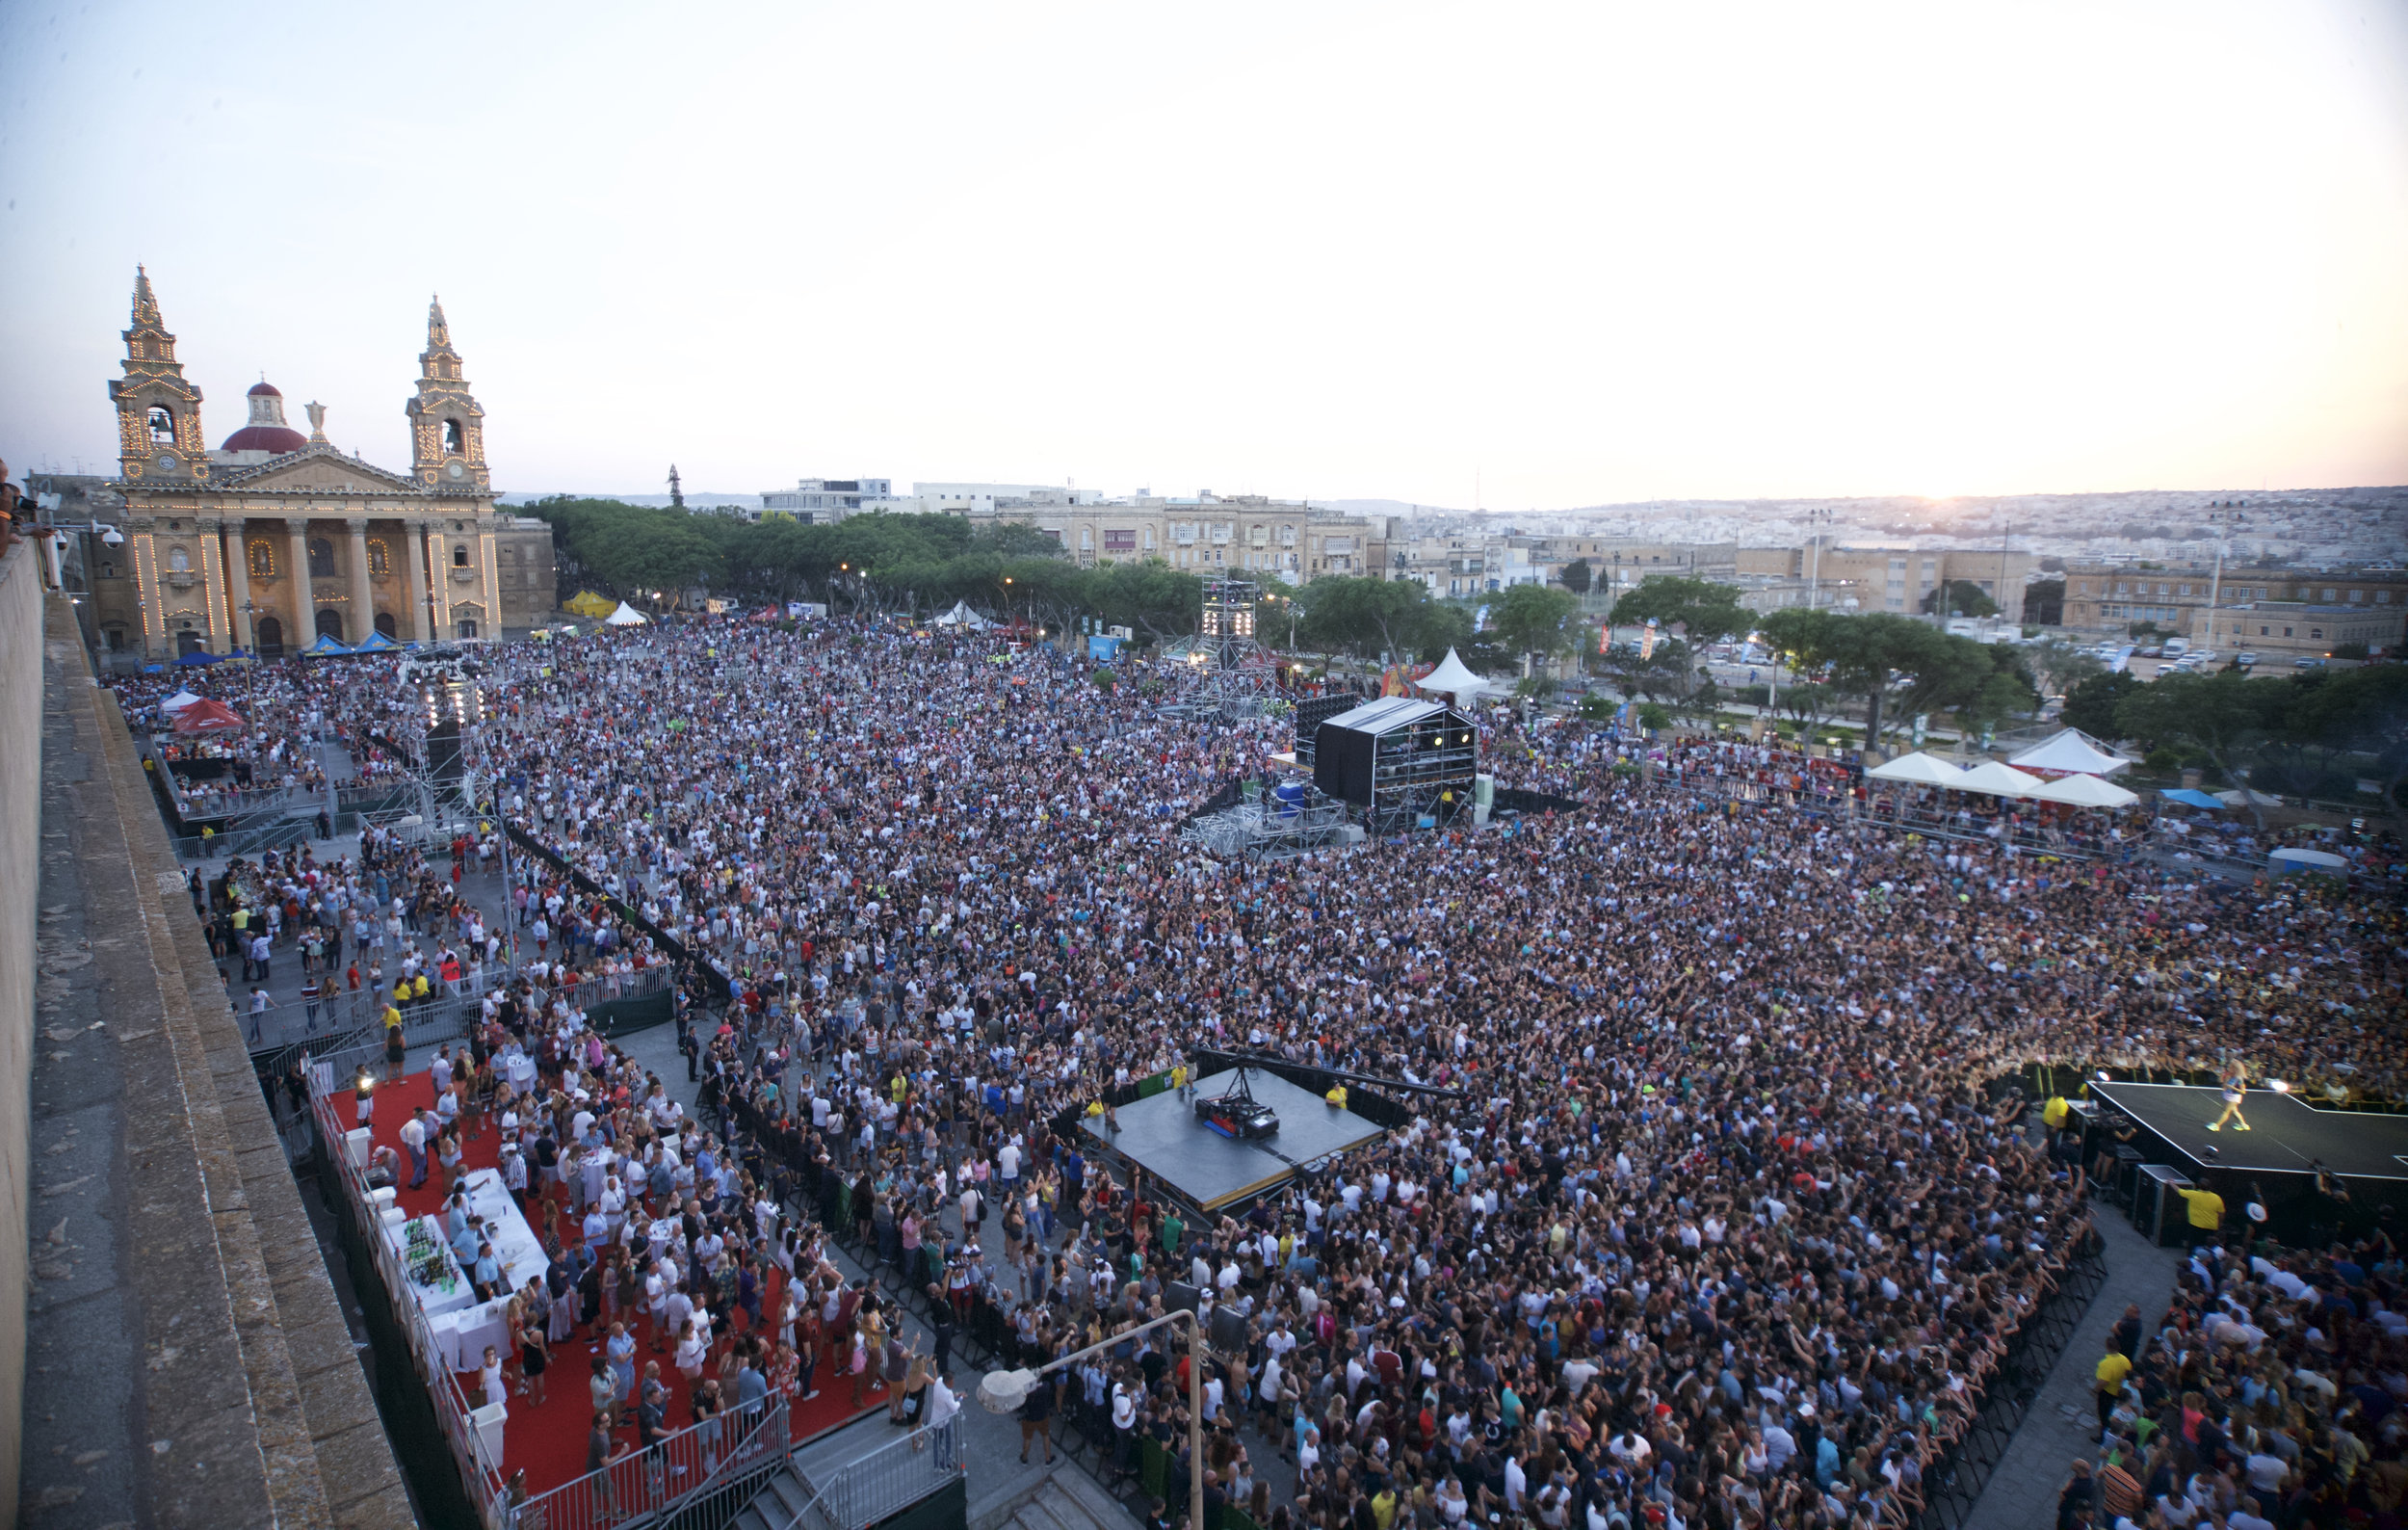 One Malta's most iconic festivals, the isle of mtv music week